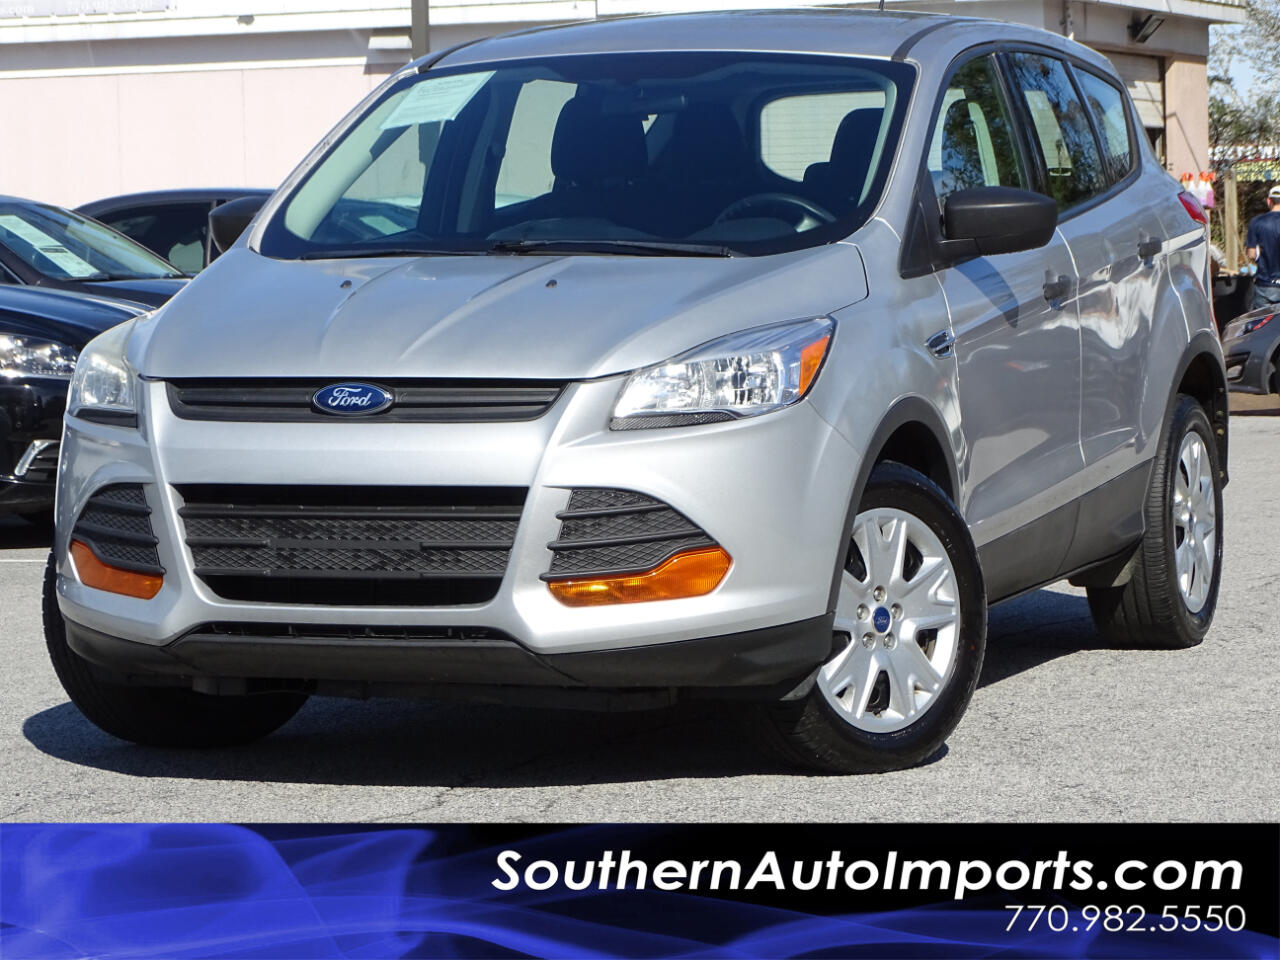 2013 Ford Escape S FWD, Automatic